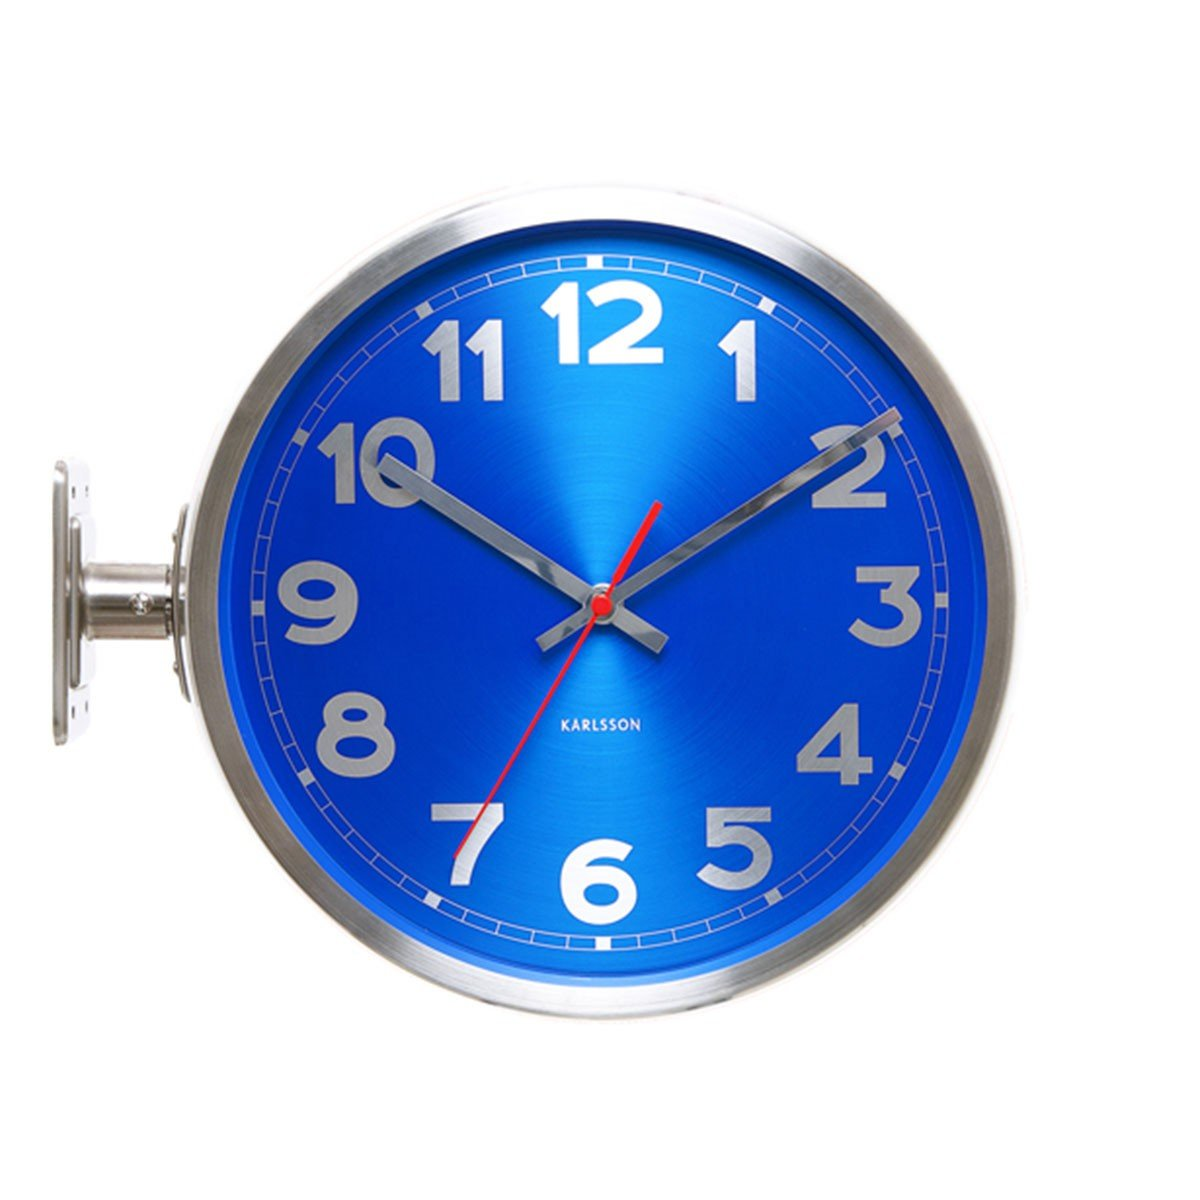 Karlsson Double Sided Stainless Steel Wall Clock, Blue       reviews and more news